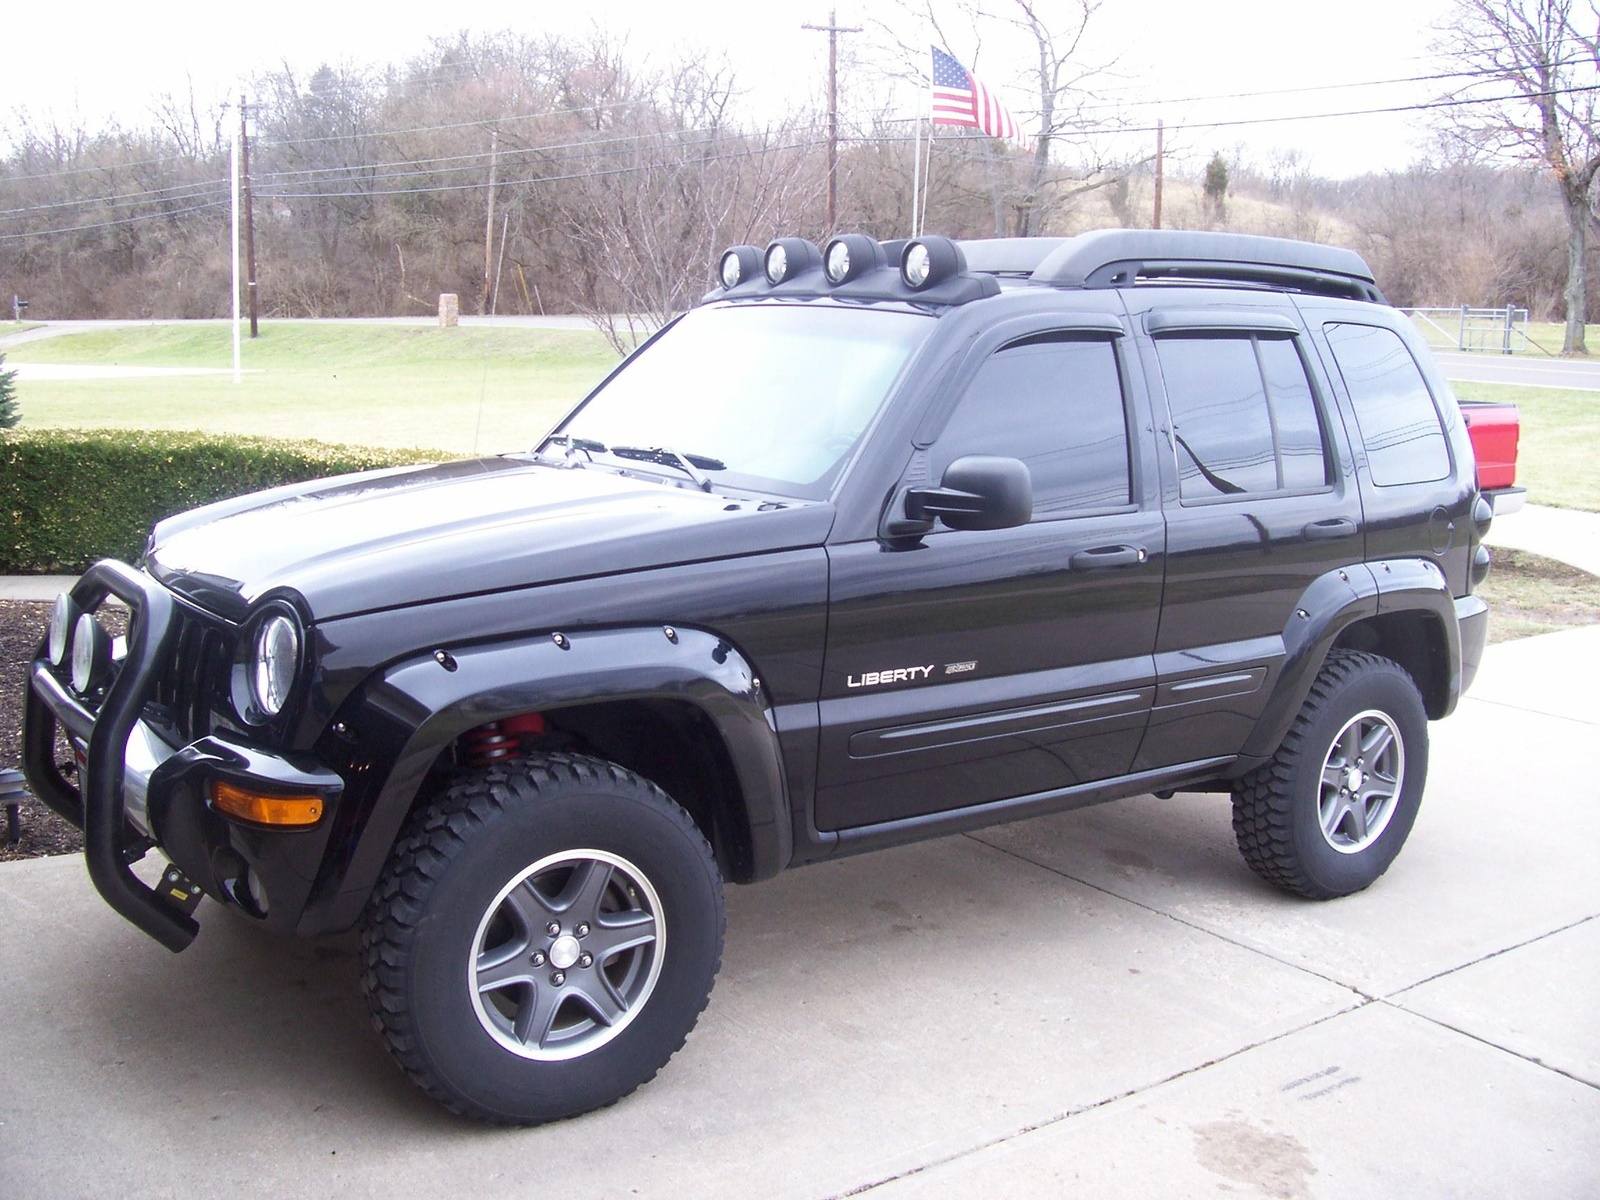 Jeep liberty 2008 lifted jeep liberty kj kk pinterest jeep liberty jeeps and liberty